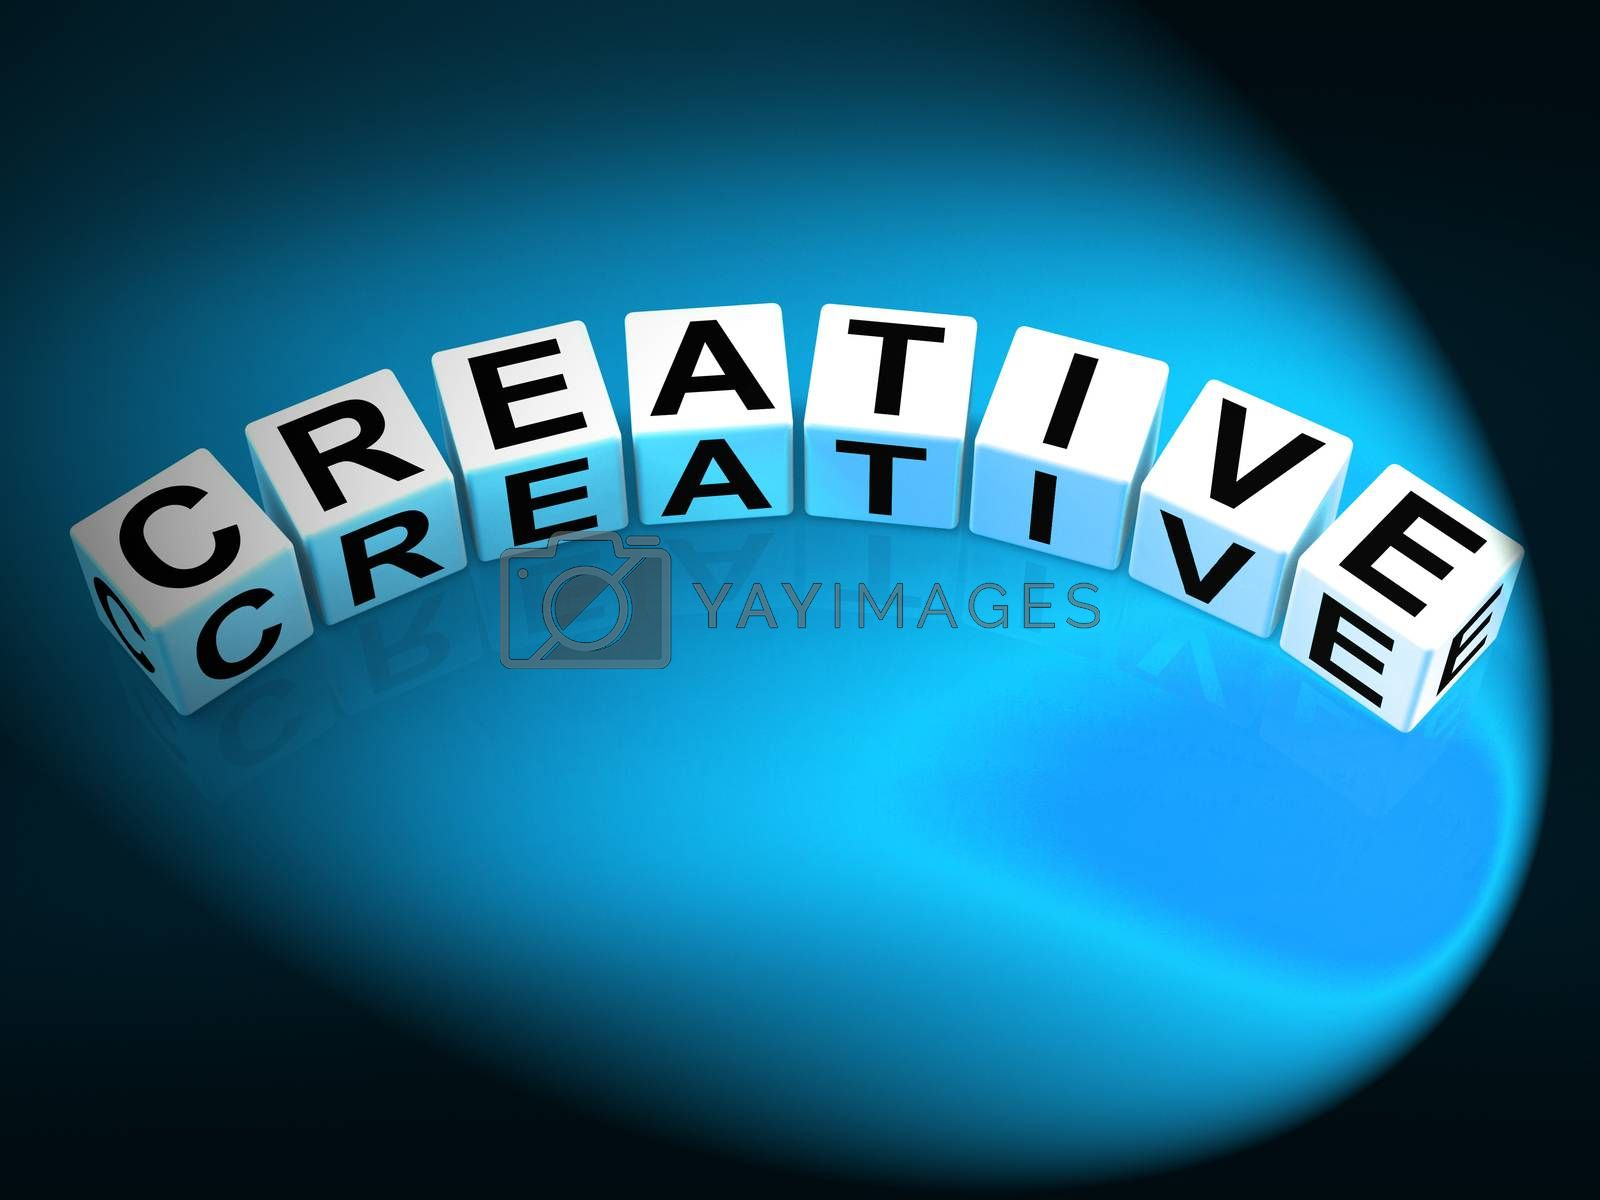 Creative Dice Mean Innovative Inventive and Imaginative by stuartmiles